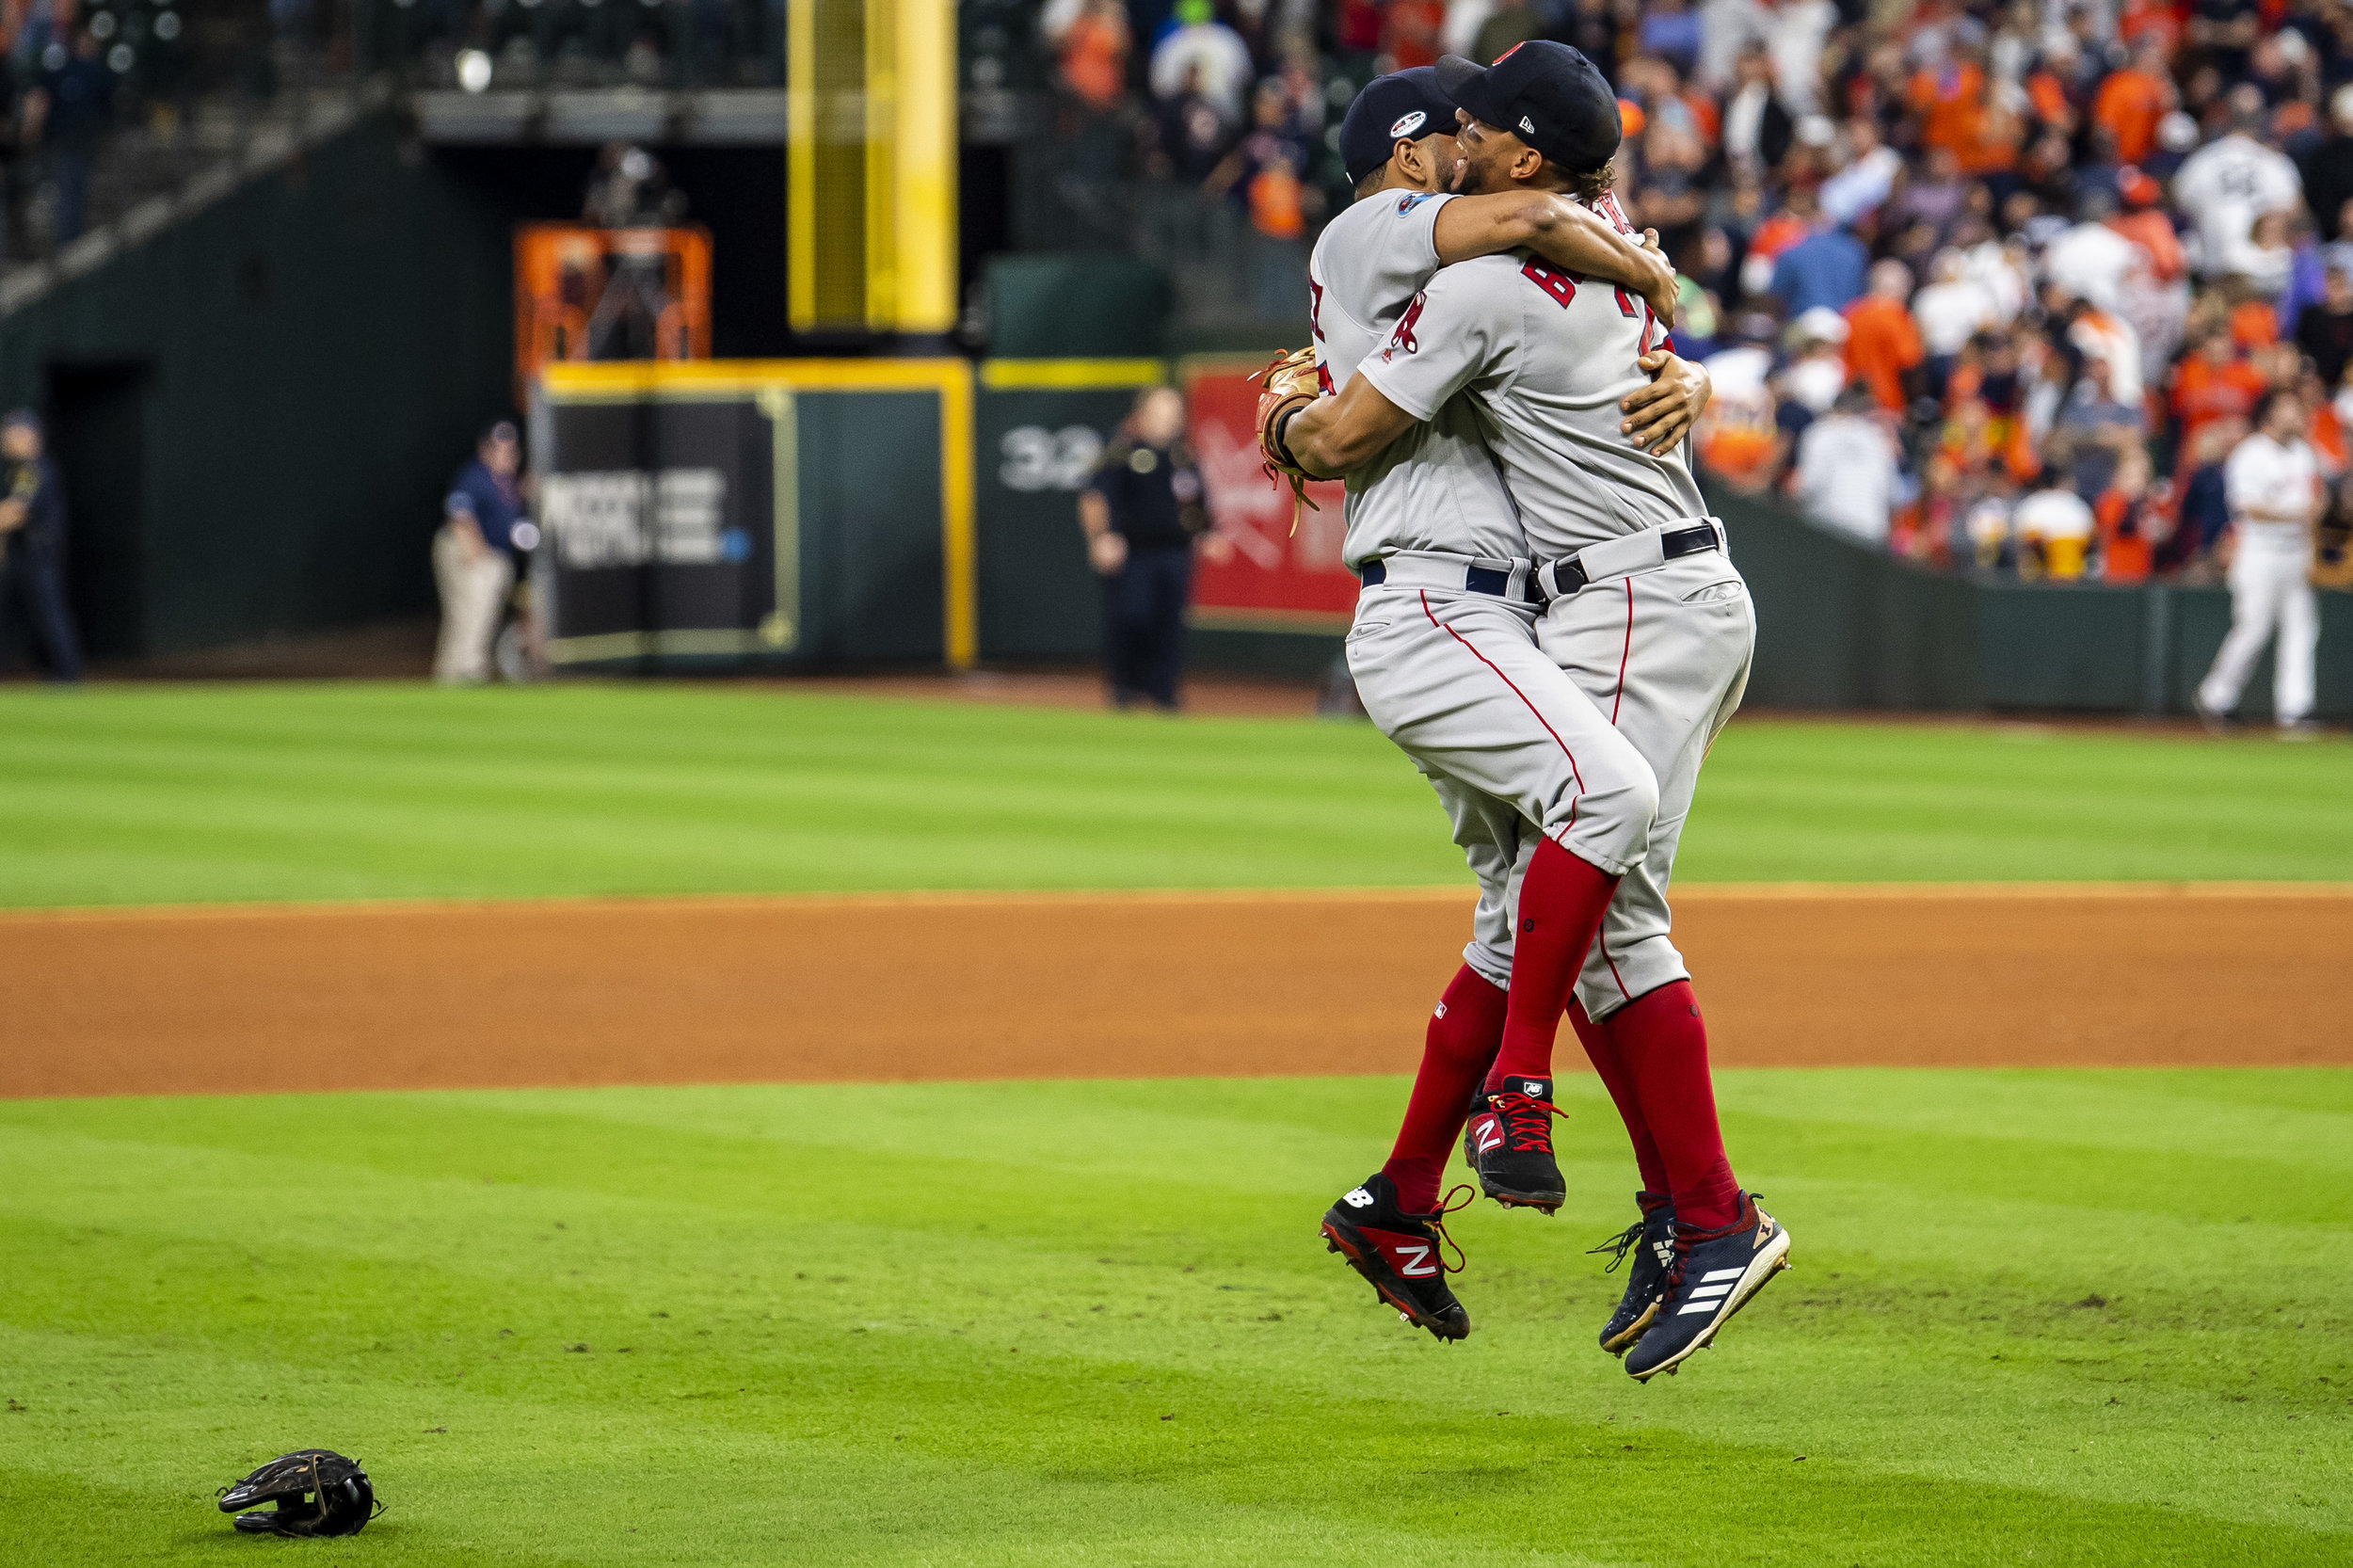 October 18, 2018, Houston, TX: Boston Red Sox shortstop Xander Bogaerts hugs Boston Red Sox pitcher Eduardo Rodriguez after the Boston Red Sox defeated the Houston Astros in Game 5 of the ALCS to advance to the World Series at Minute Maid Park in Houston, Texas on Thursday, October 18, 2018. (Photo by Matthew Thomas/Boston Red Sox)